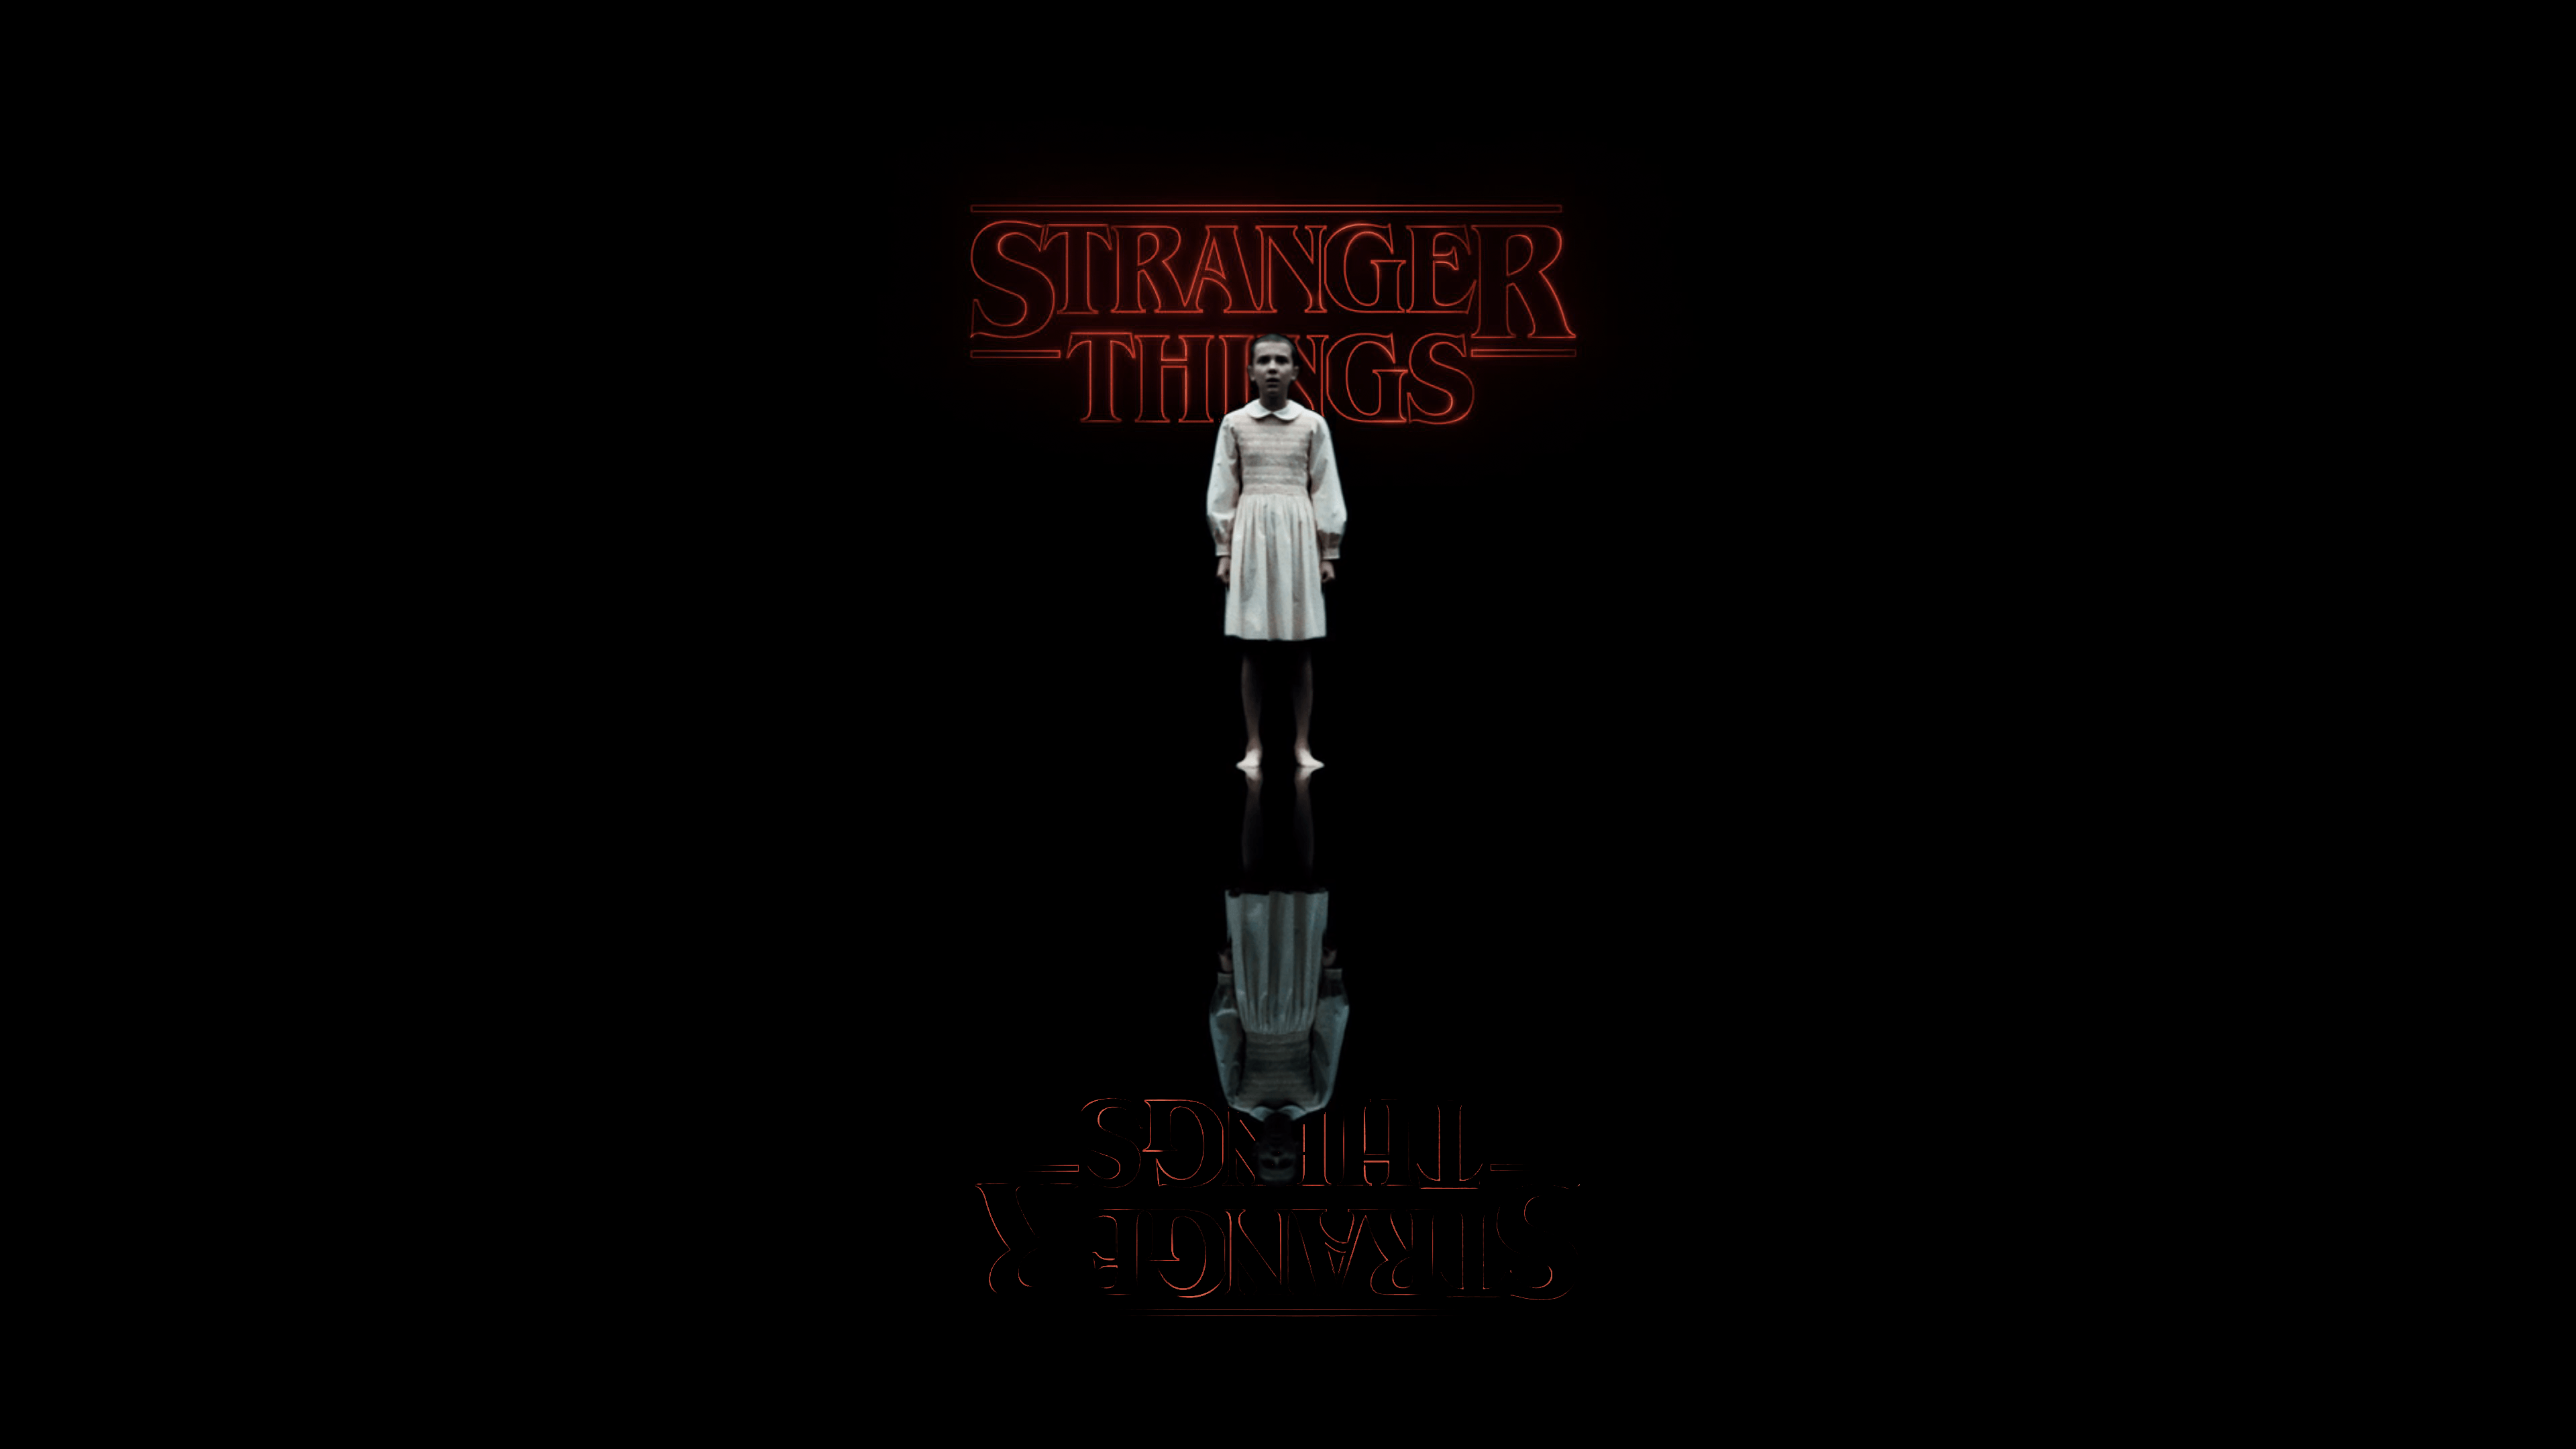 Stranger Things Wallpapers 3840x2160